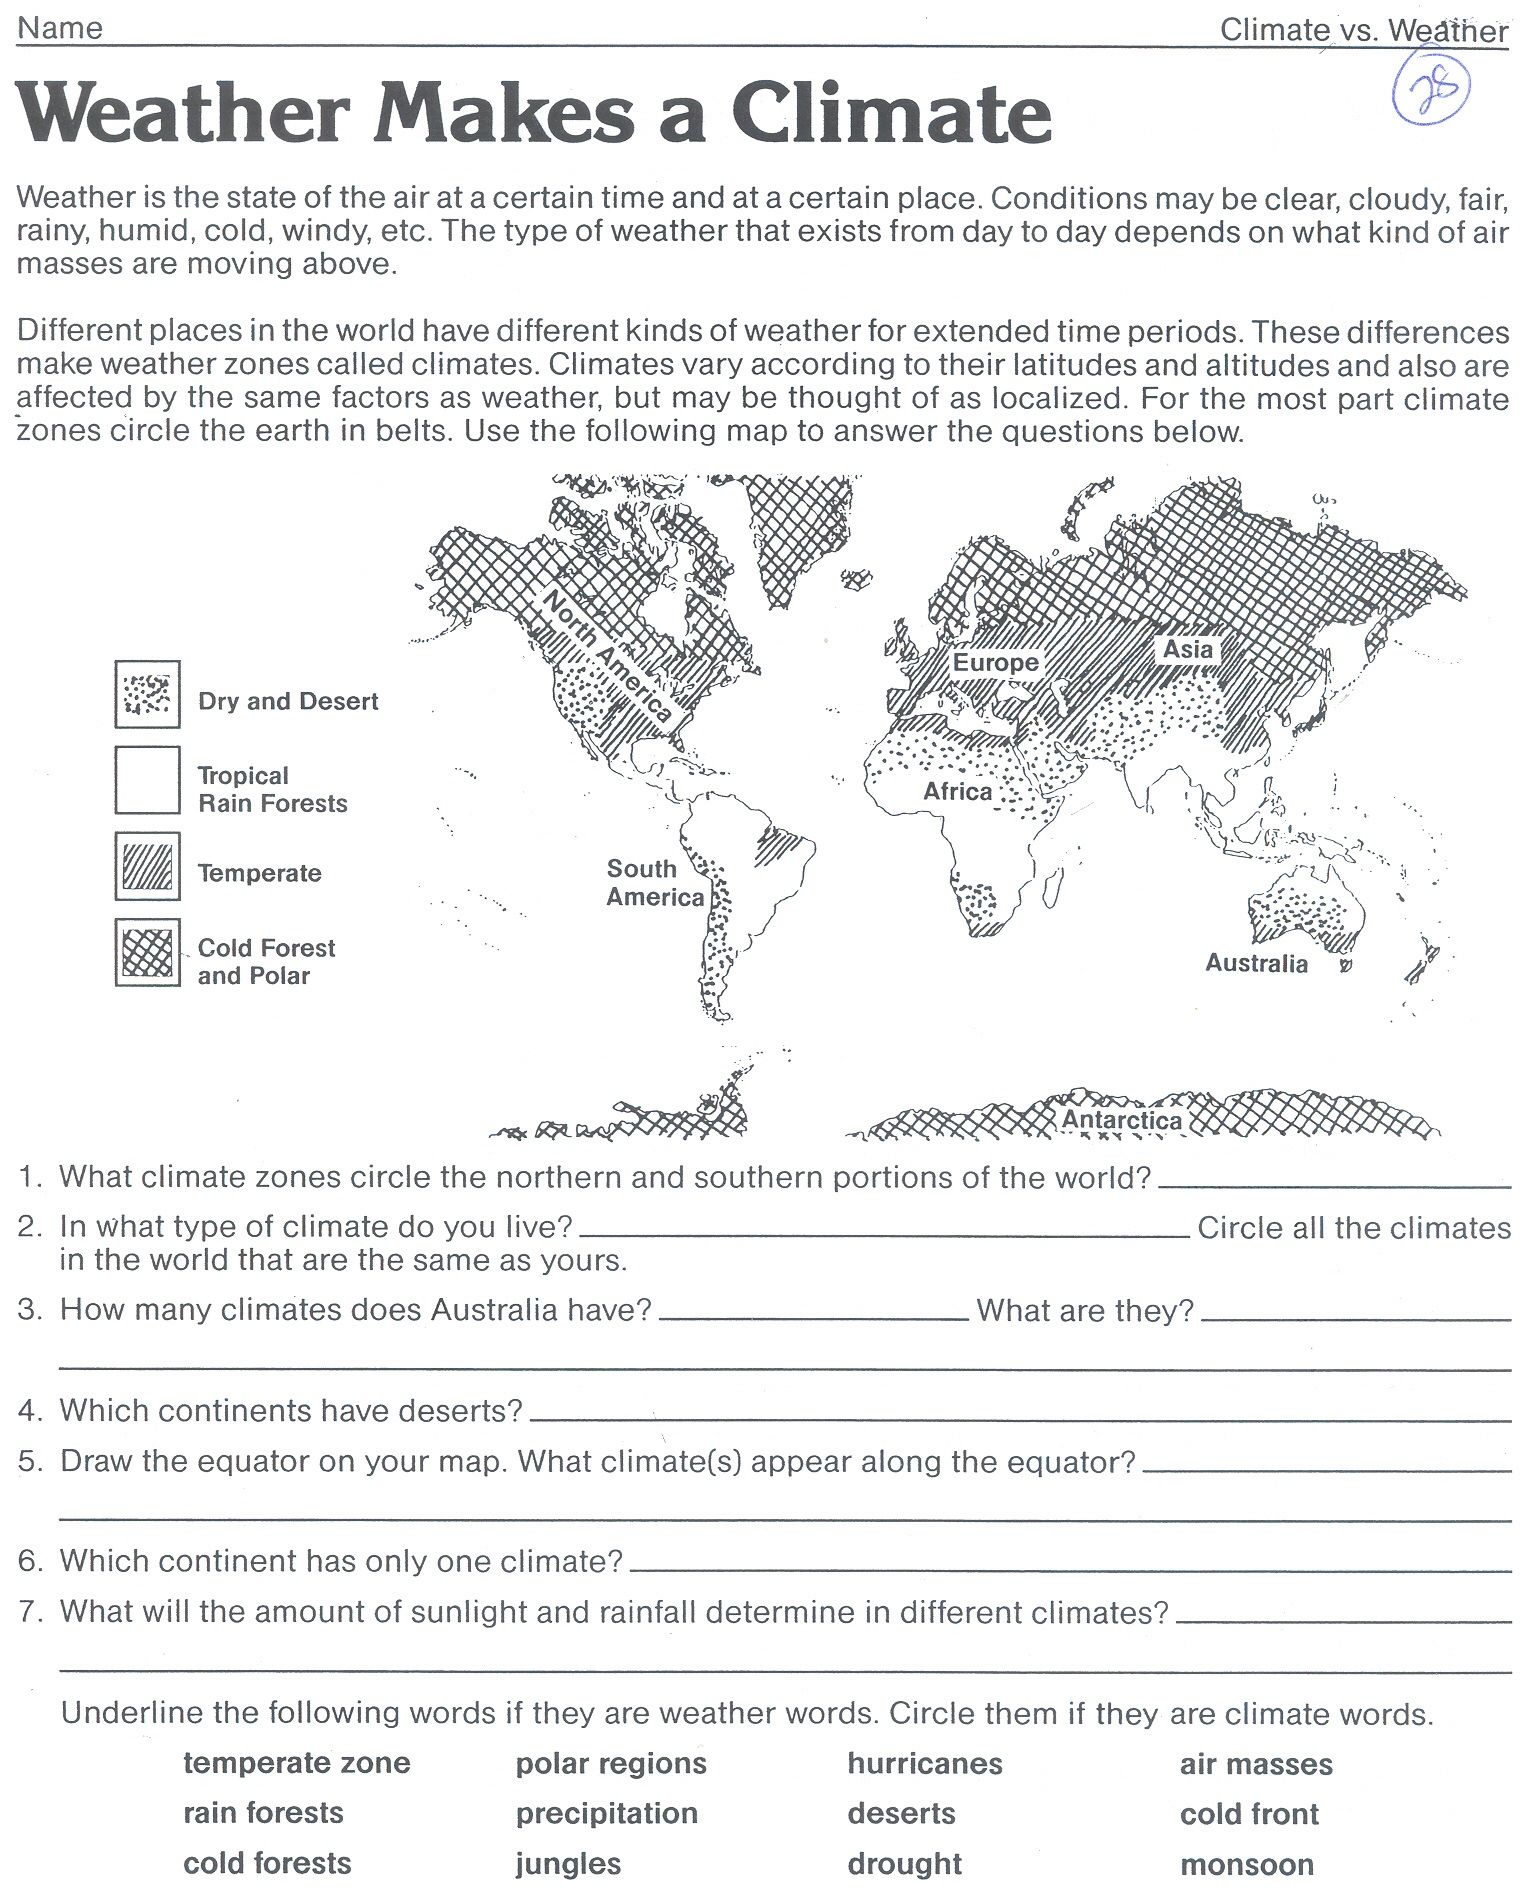 World Climate Zones Worksheet